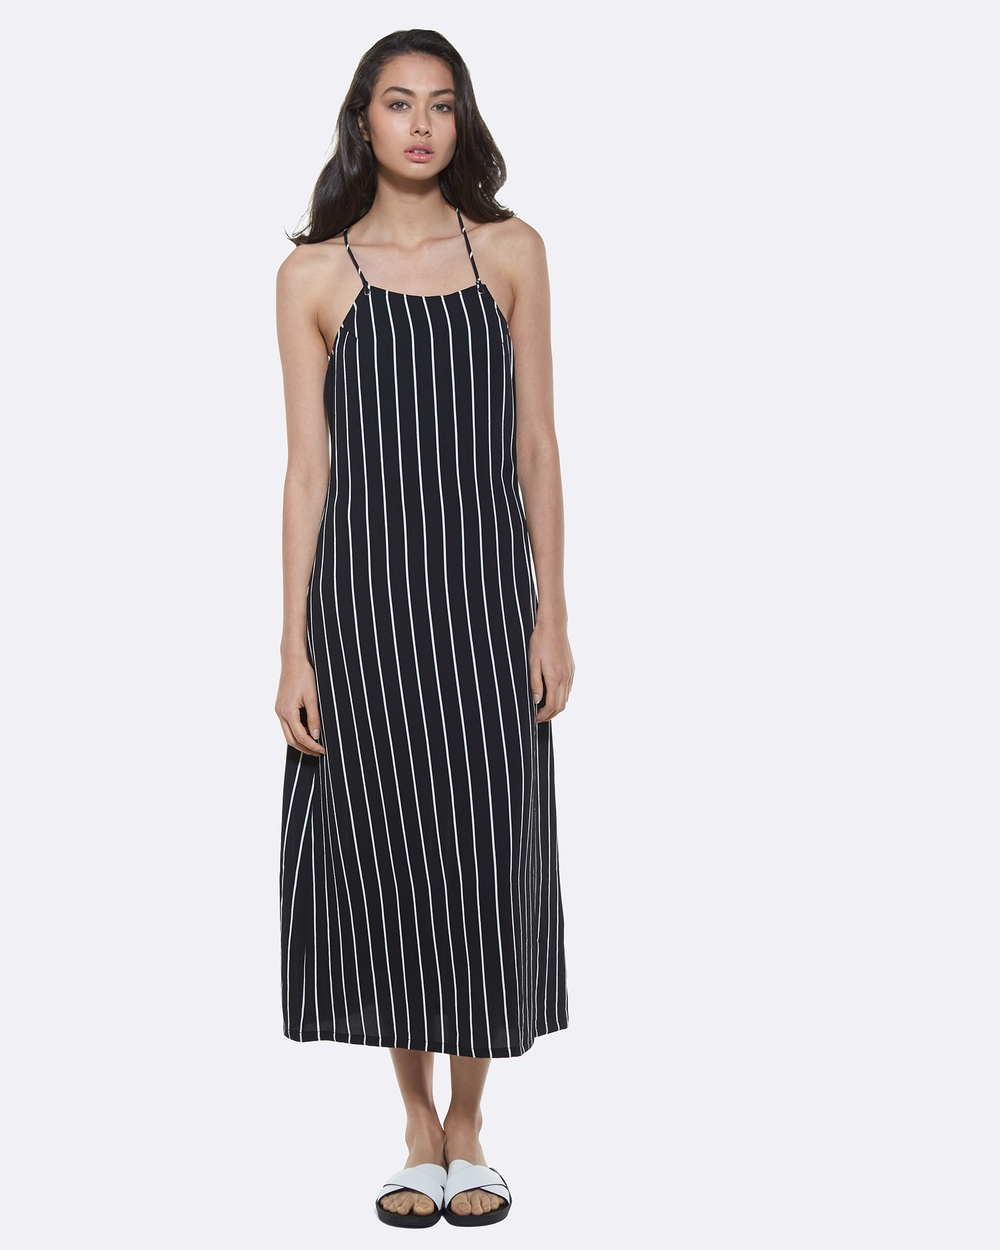 Amelius Black/White Stripe Ada Midi Dress